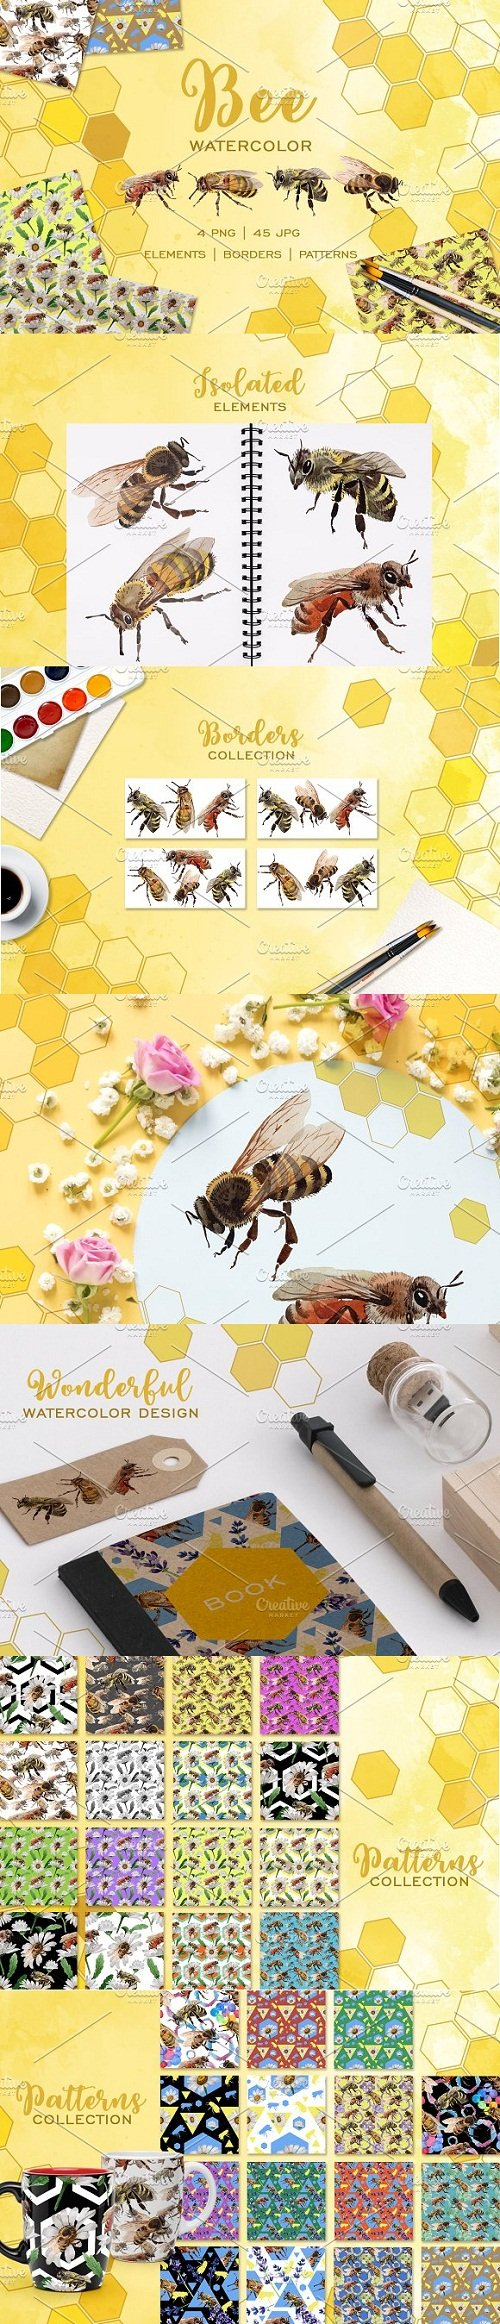 Bee Watercolor png - 3493635